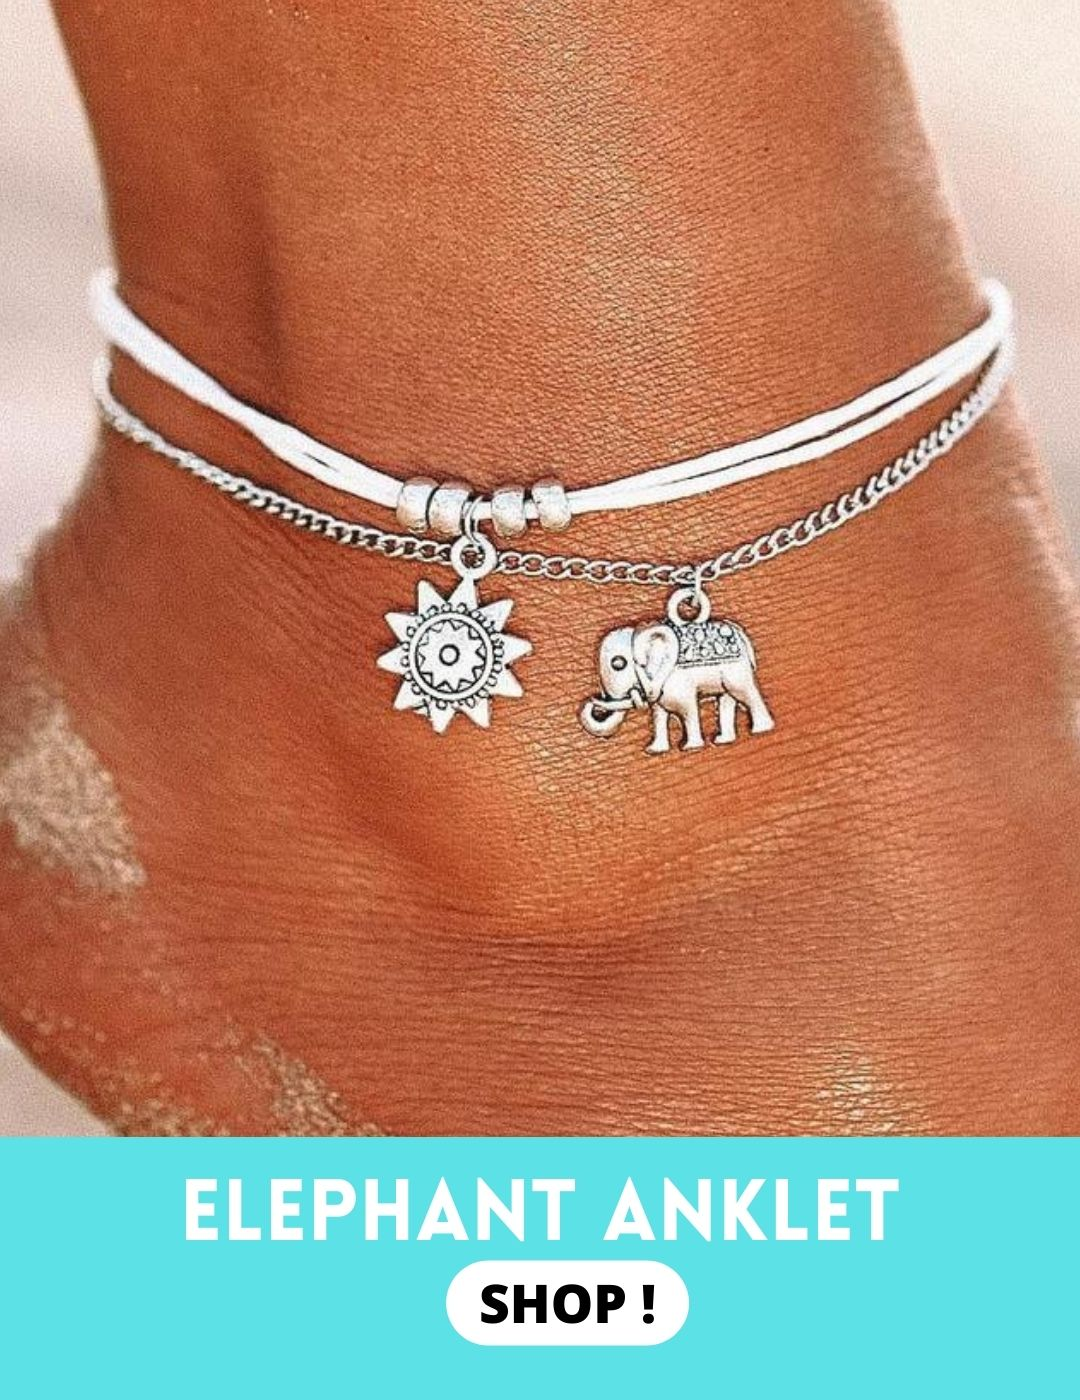 Meaning behind elephant anklets